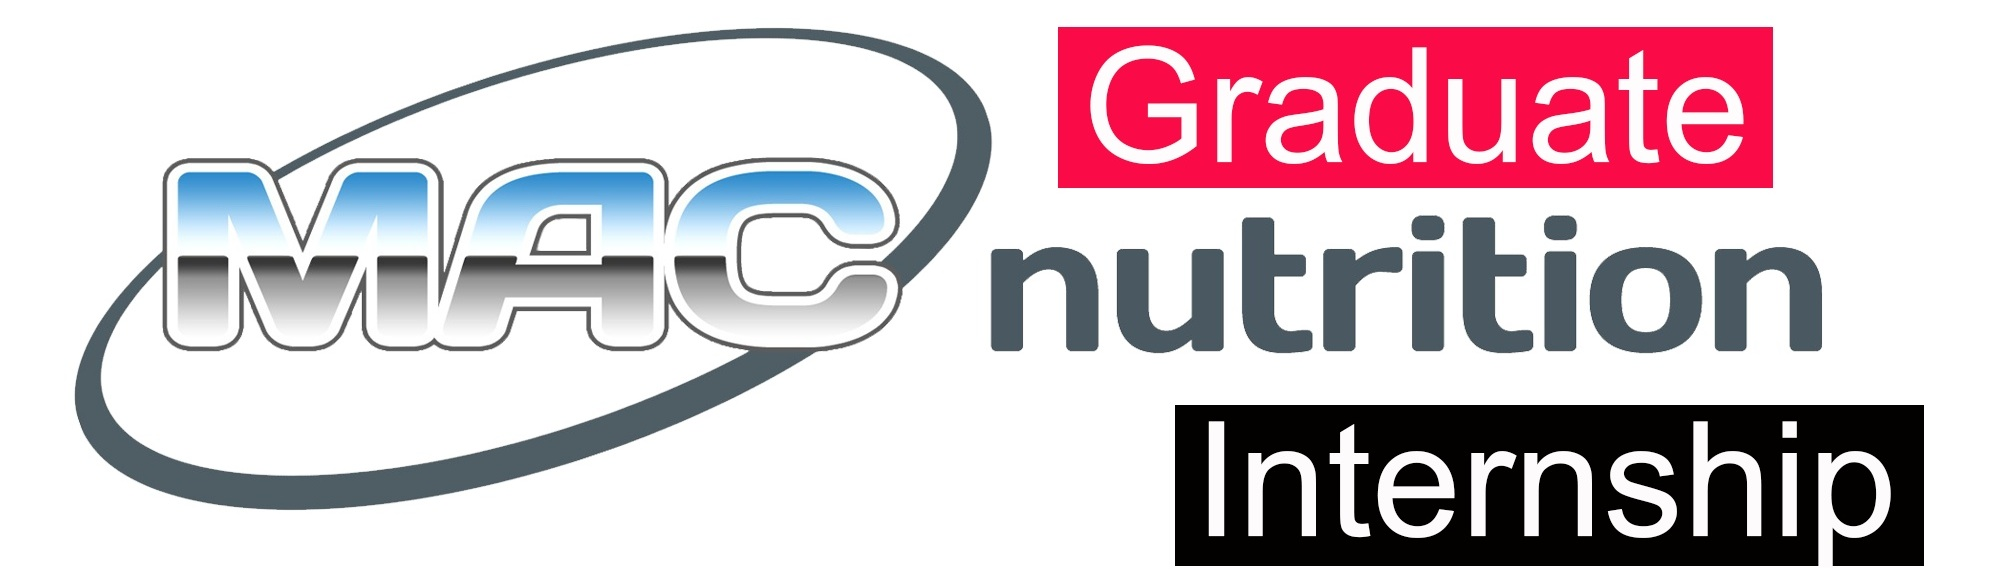 Graduate Nutrition Internships Job